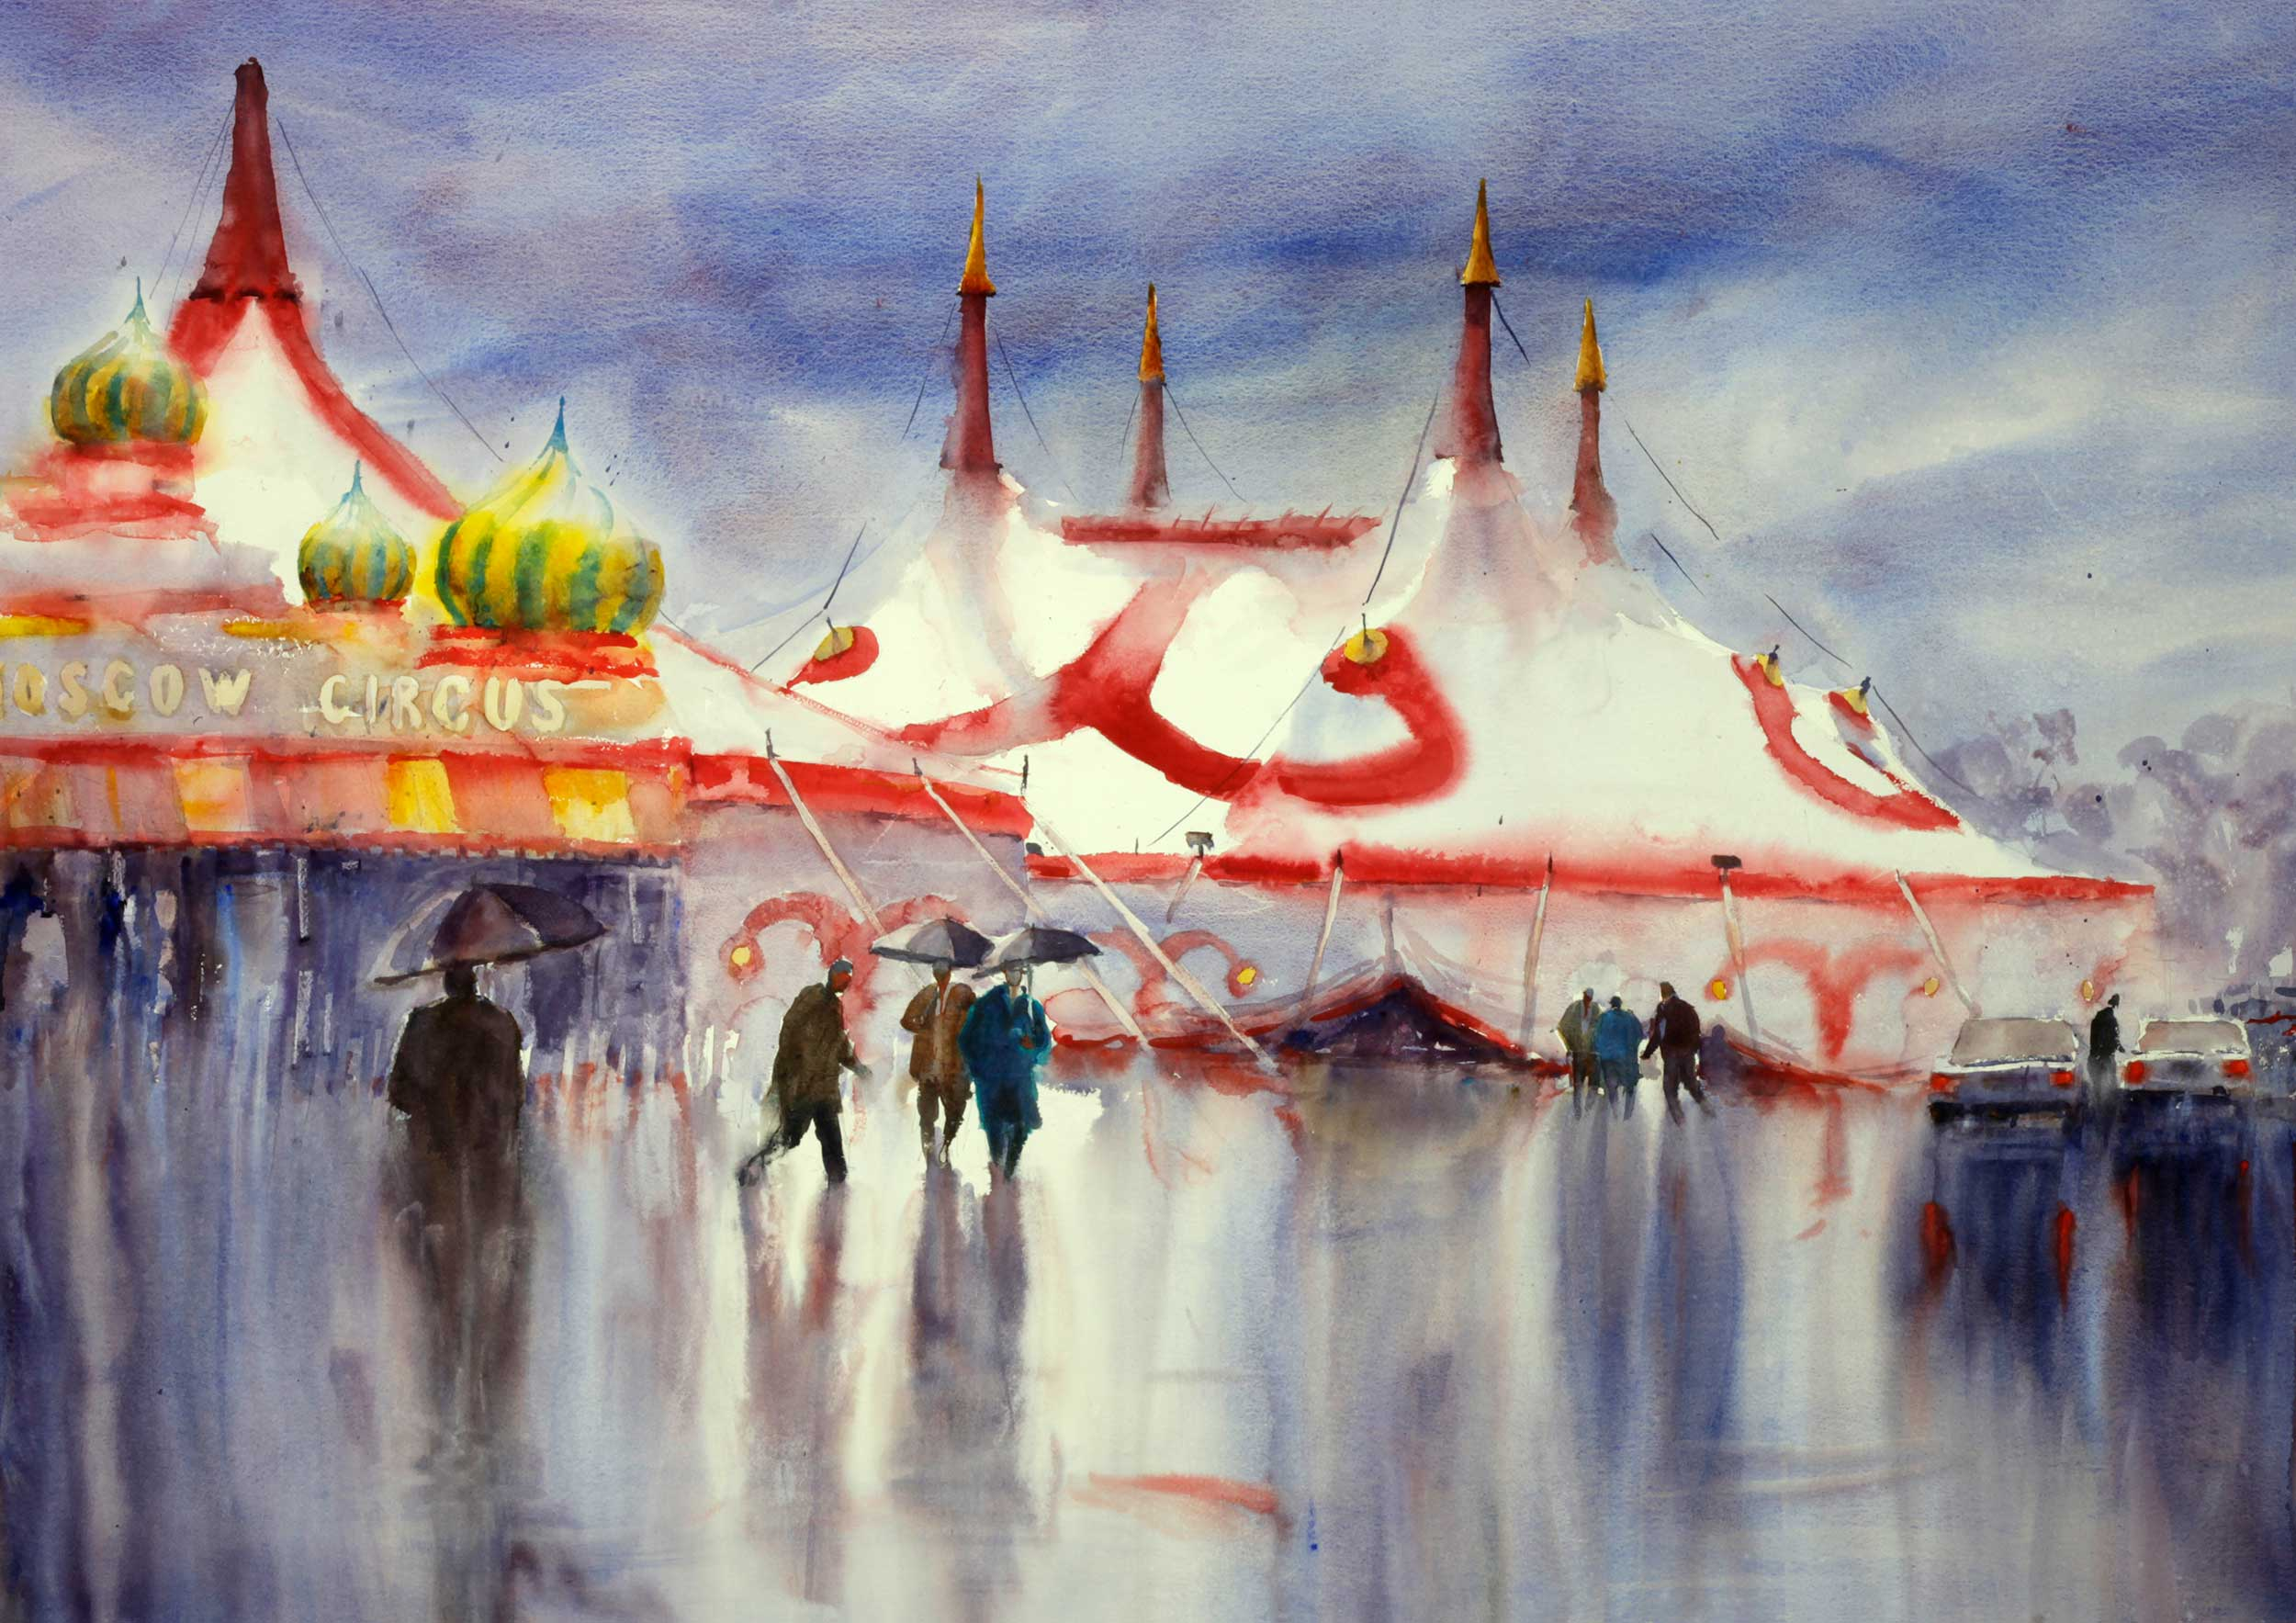 Rainy Day, Moscow Circus 150 x 107 cm (This painting is framed)